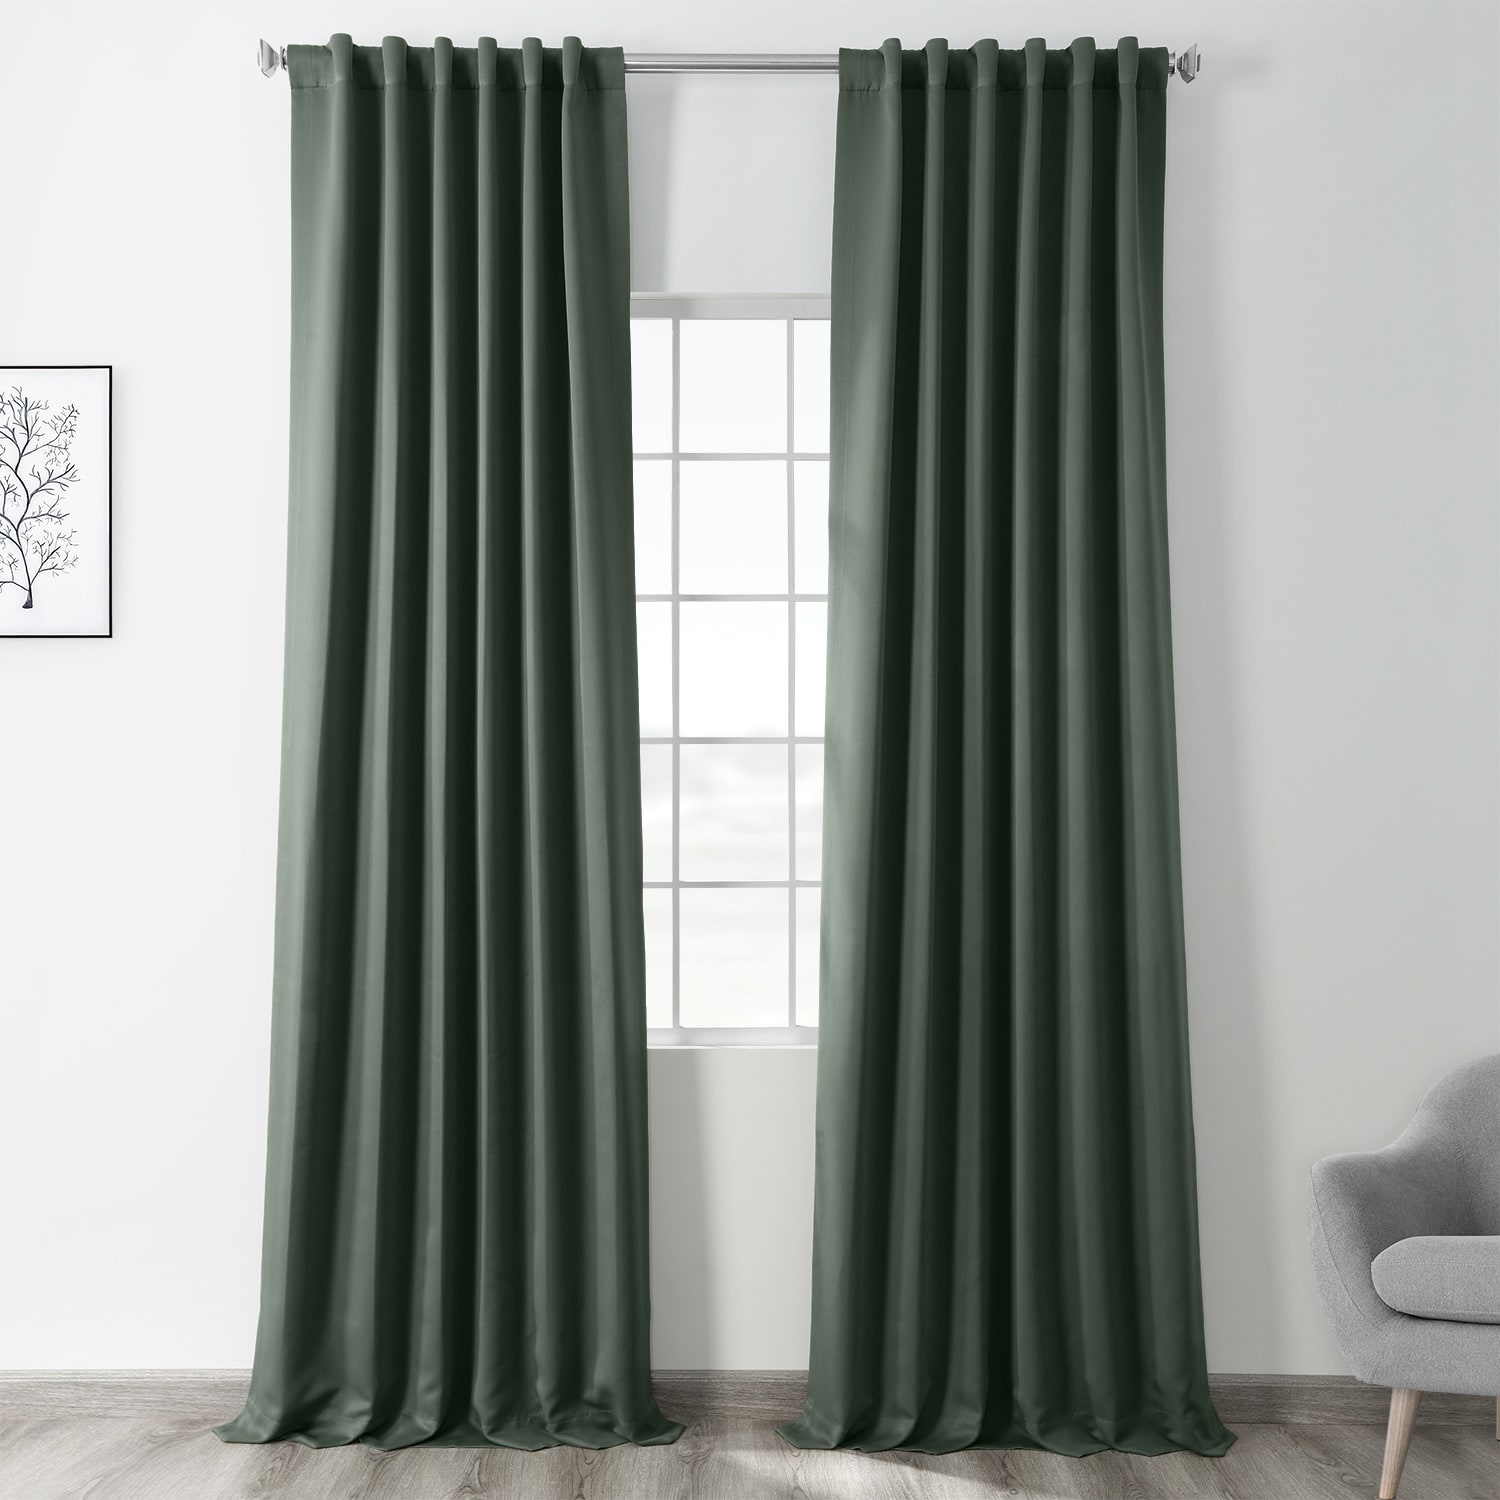 Bedroom Blackout Curtains Get Dark Mallard Green Blackout Curtain And Drapes